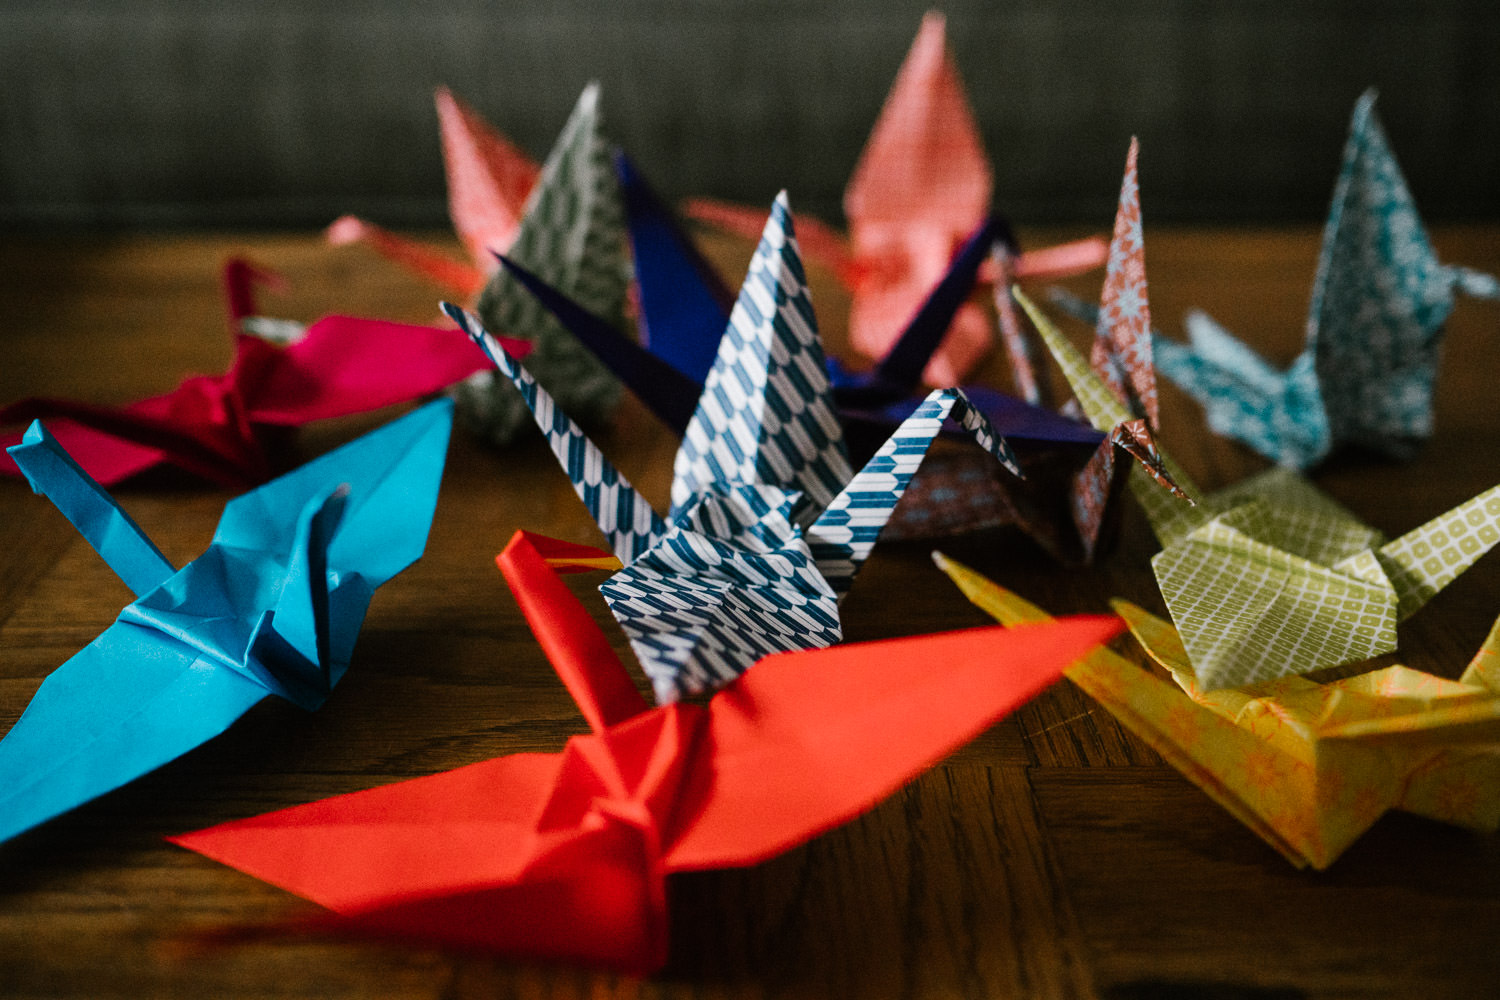 Origami cranes lie on a table.